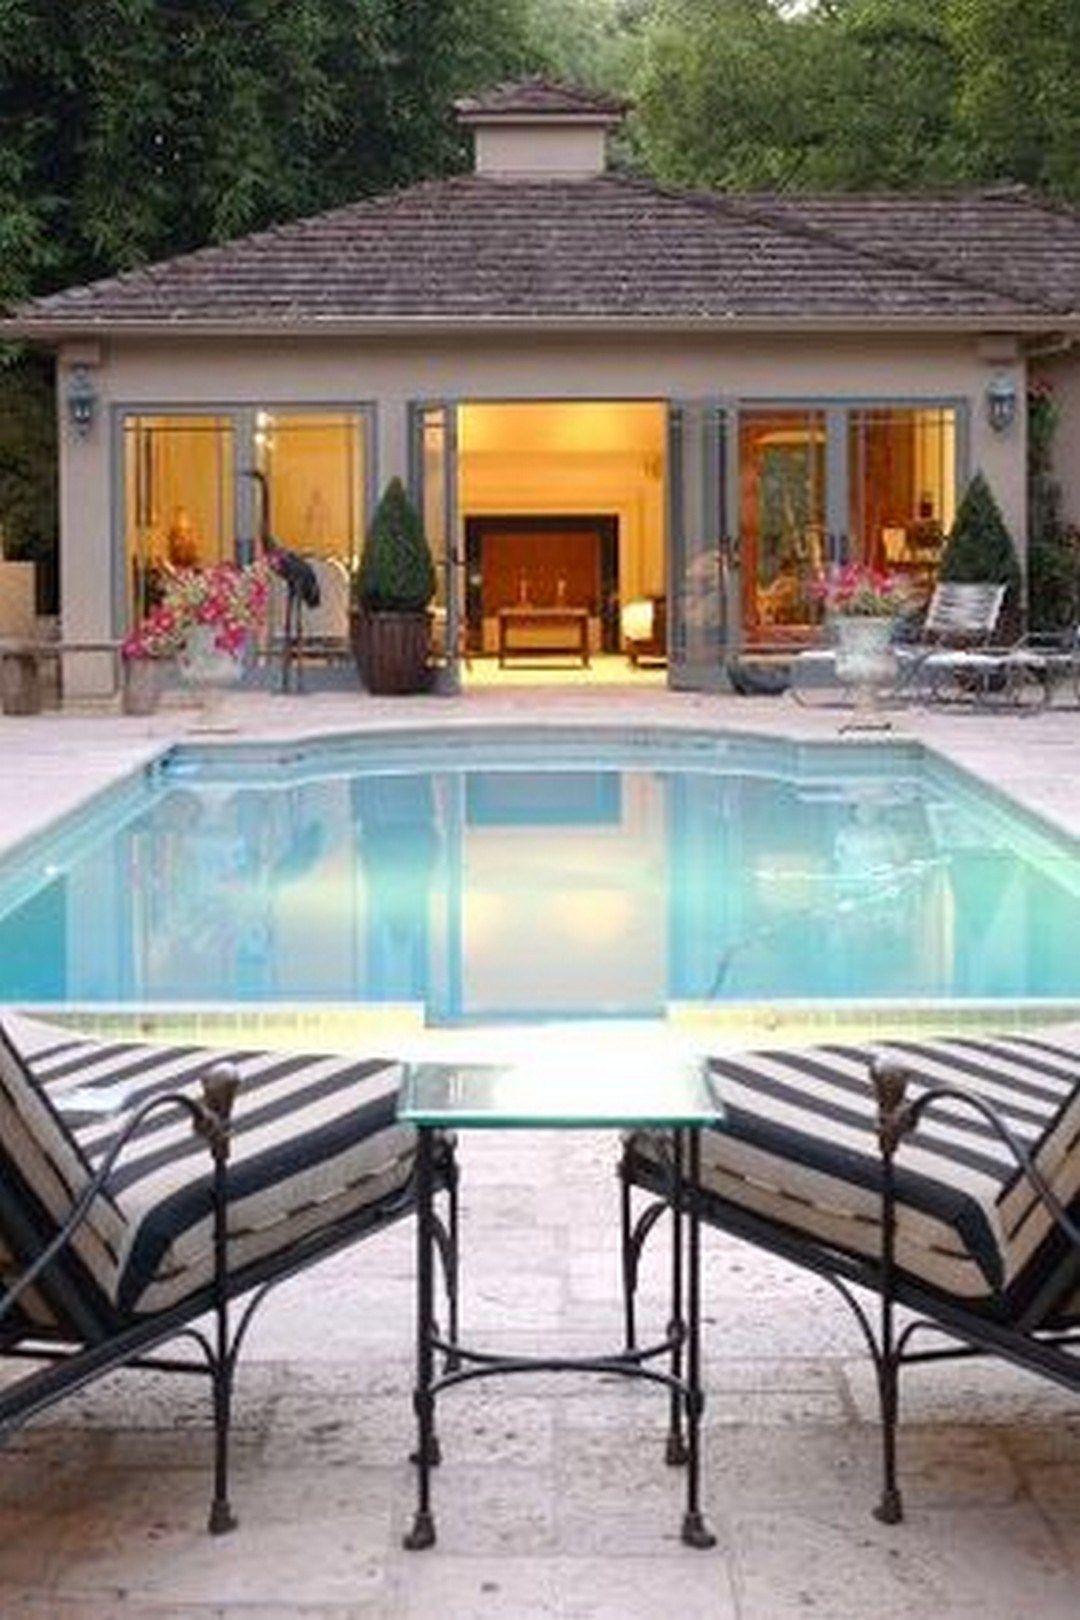 Beautiful Pool House Decorating Ideas On A Budget Small Pool Houses Pool House Interiors Luxury Pool House